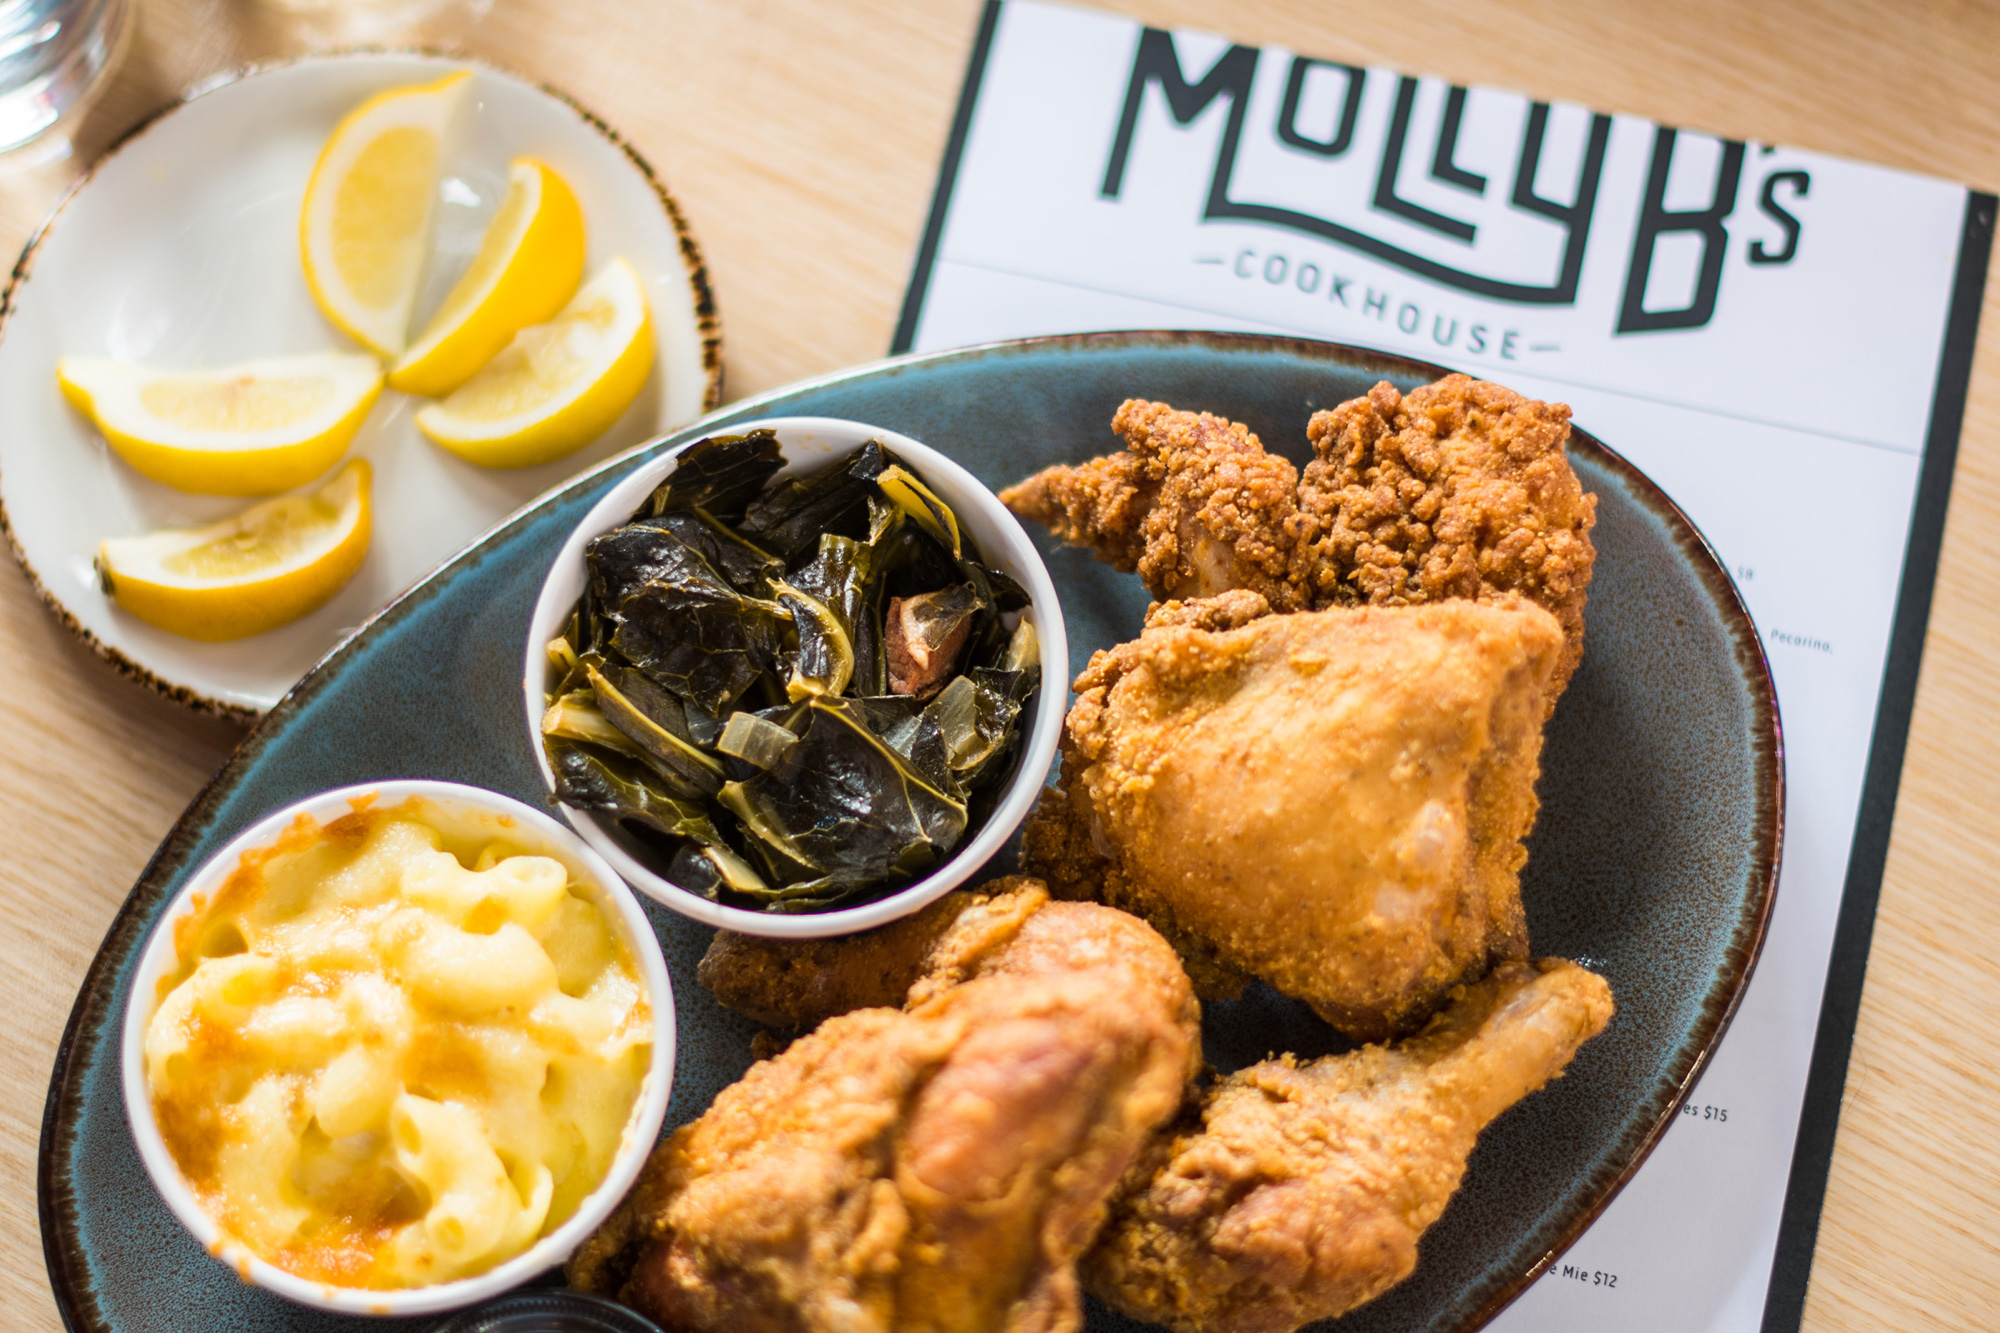 Fried chicken at Molly B's at Mercedes-Benz Stadium in Atlanta